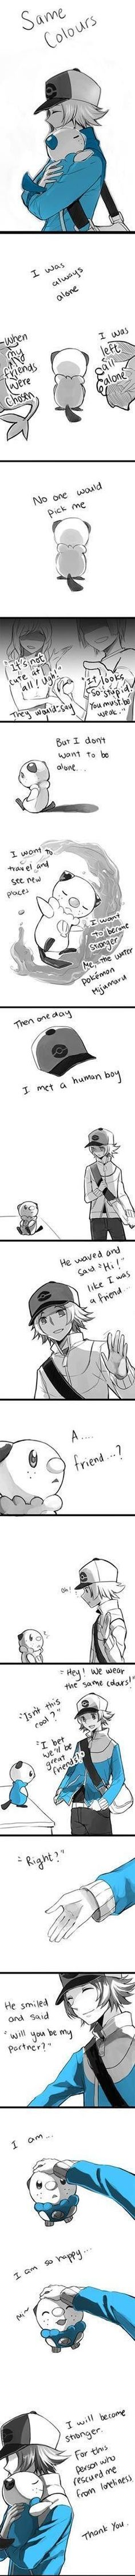 I feel bad because I had my fallout with Pokemon around black and white. <3 My brother has the game so I can play it, but... it won't be the same. lol.